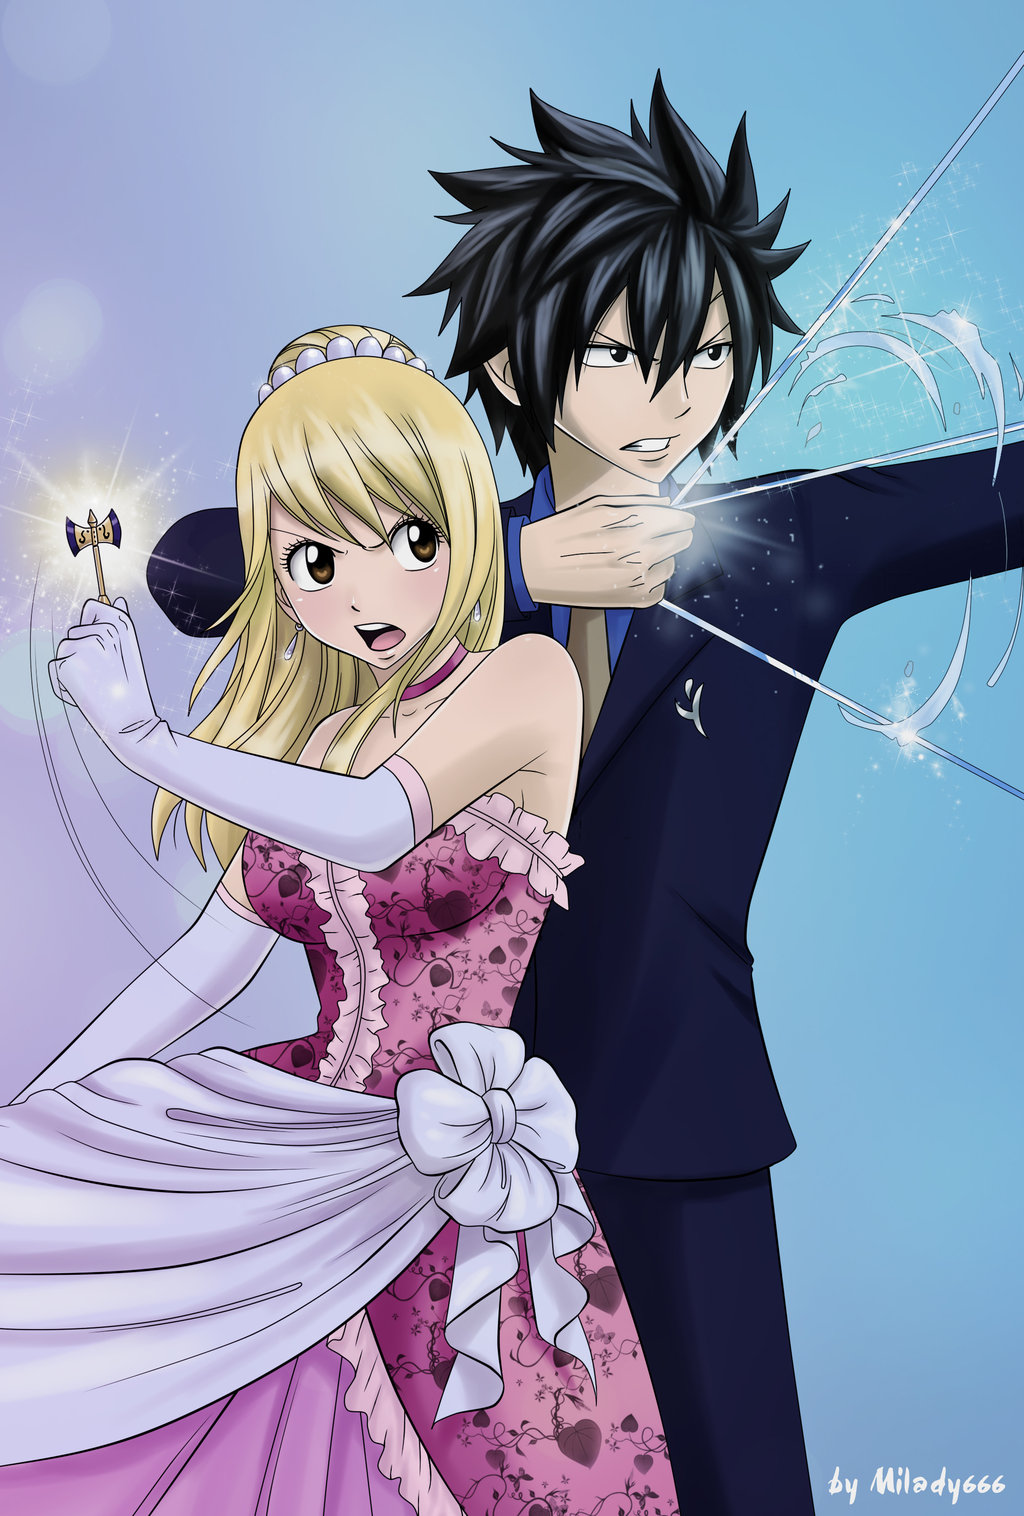 Graylu fairy tail zerochan anime image board - Image manga fairy tail ...